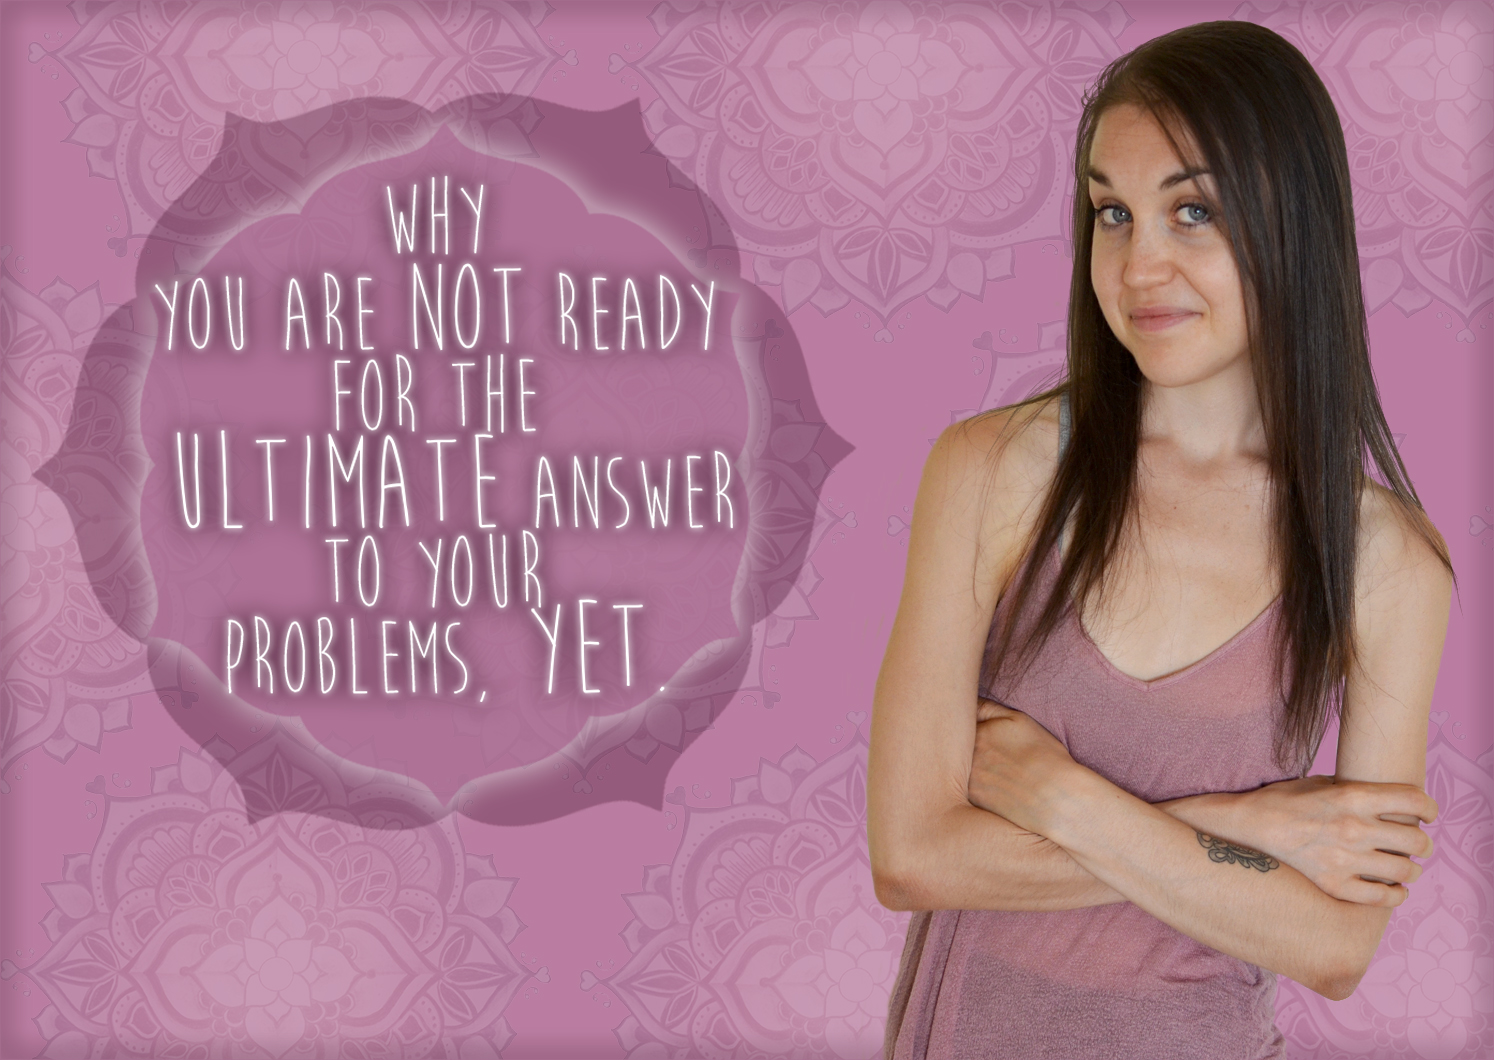 Why You Are Not Ready For The Ultimate Answer To Your Problems, Yet.